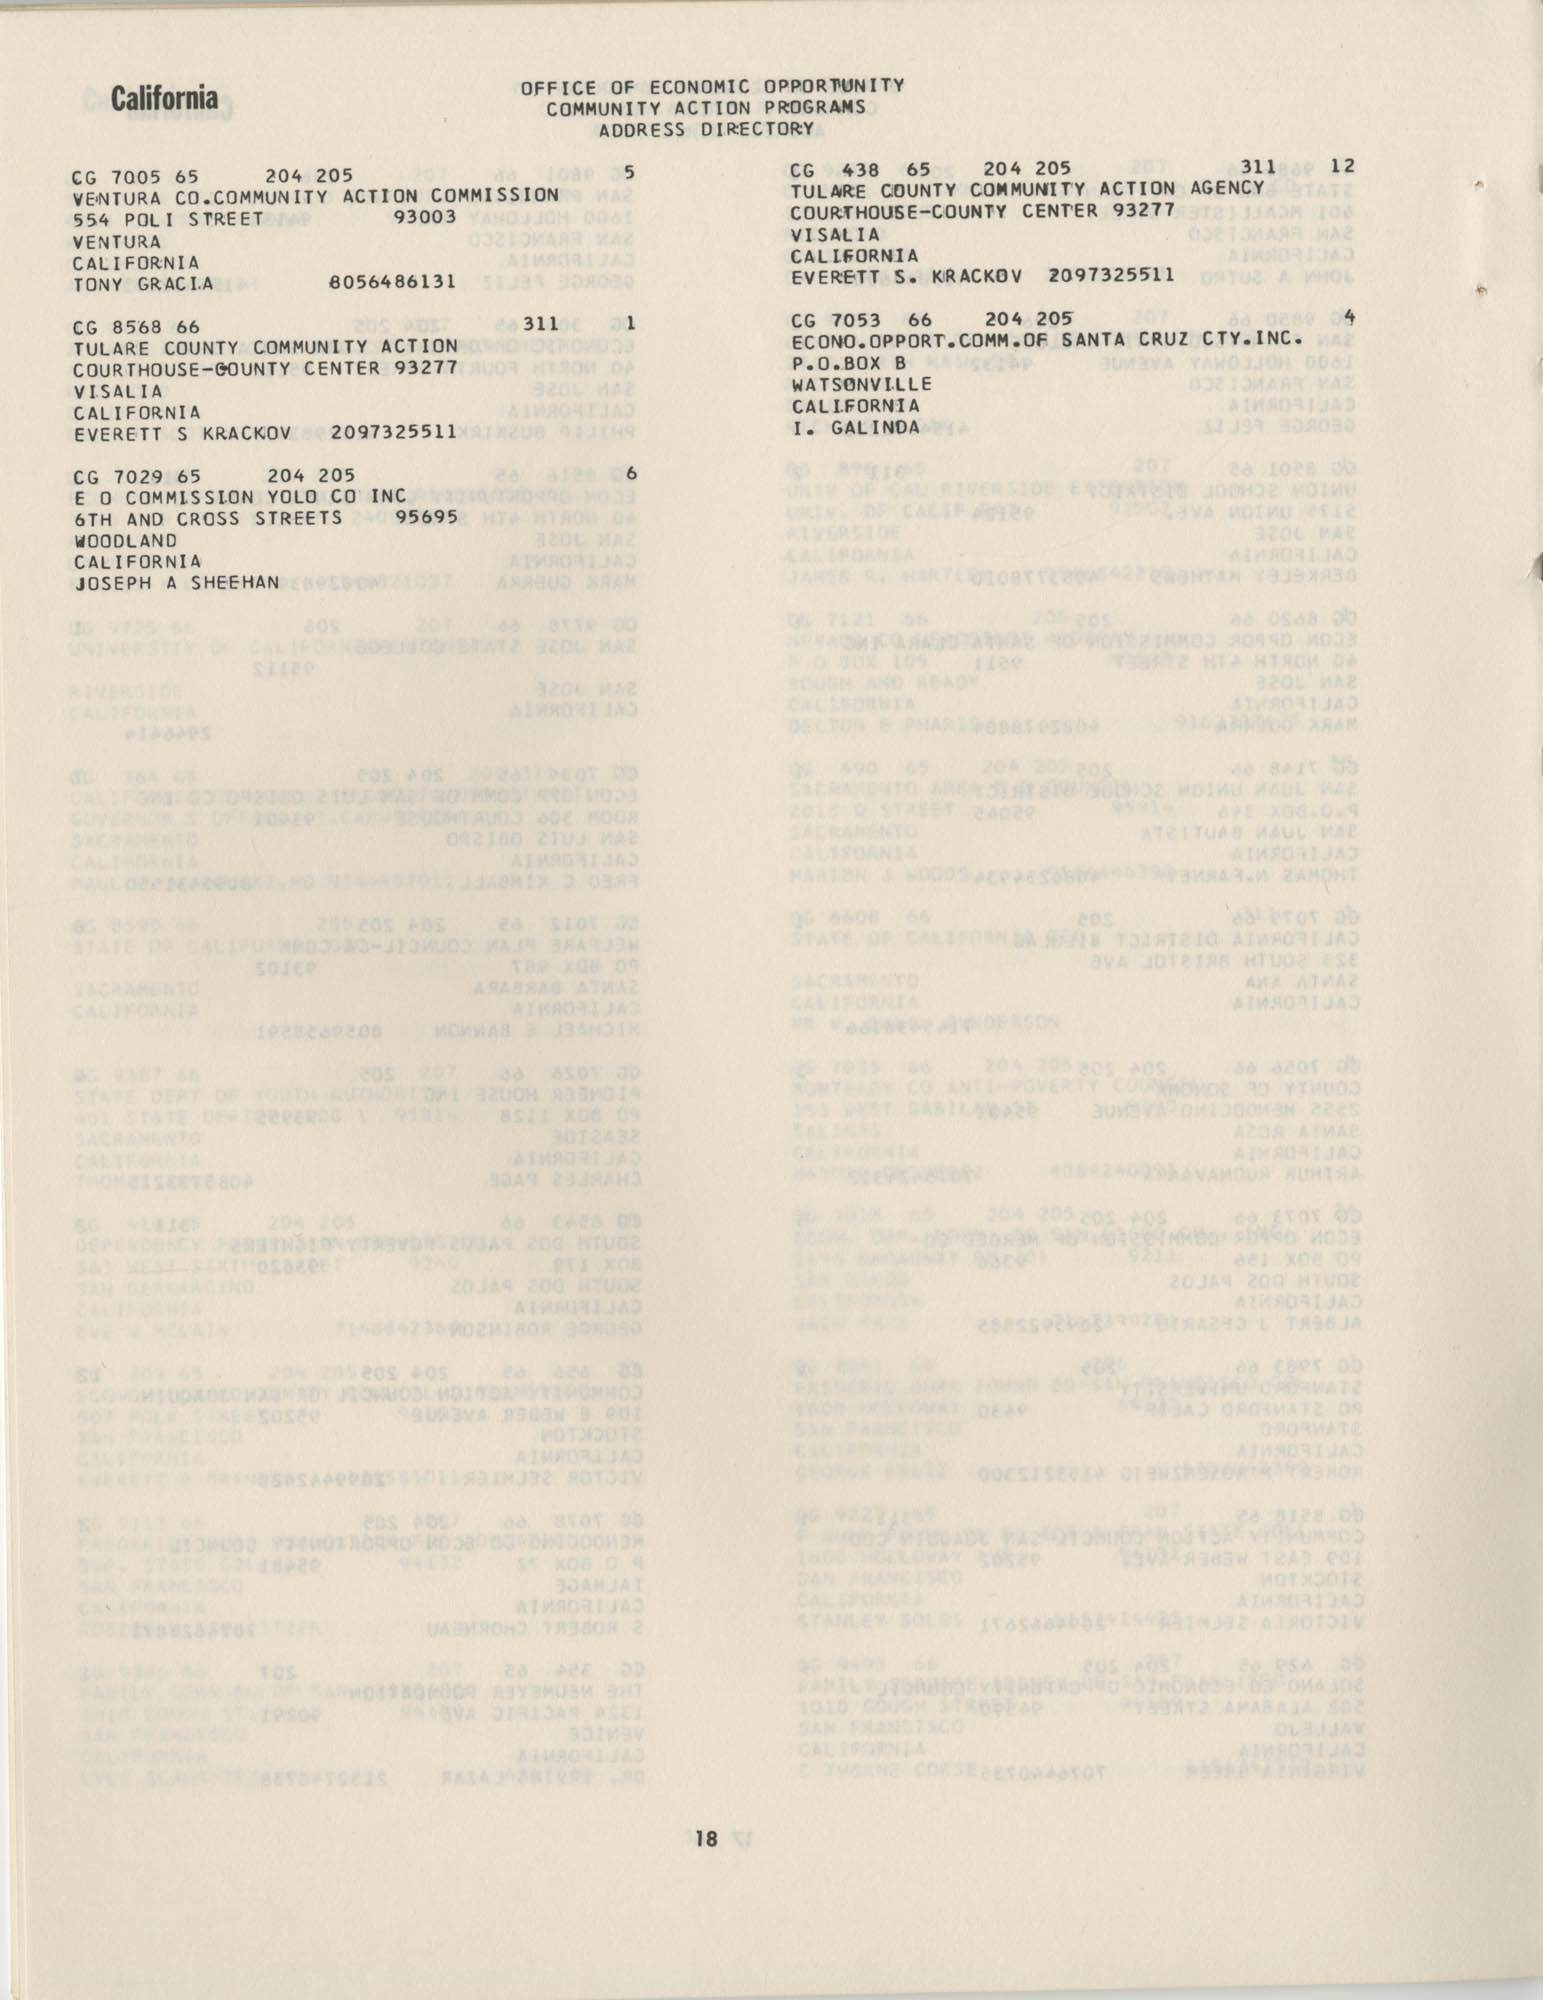 Community Action Programs Directory, June 15, 1966, Page 18